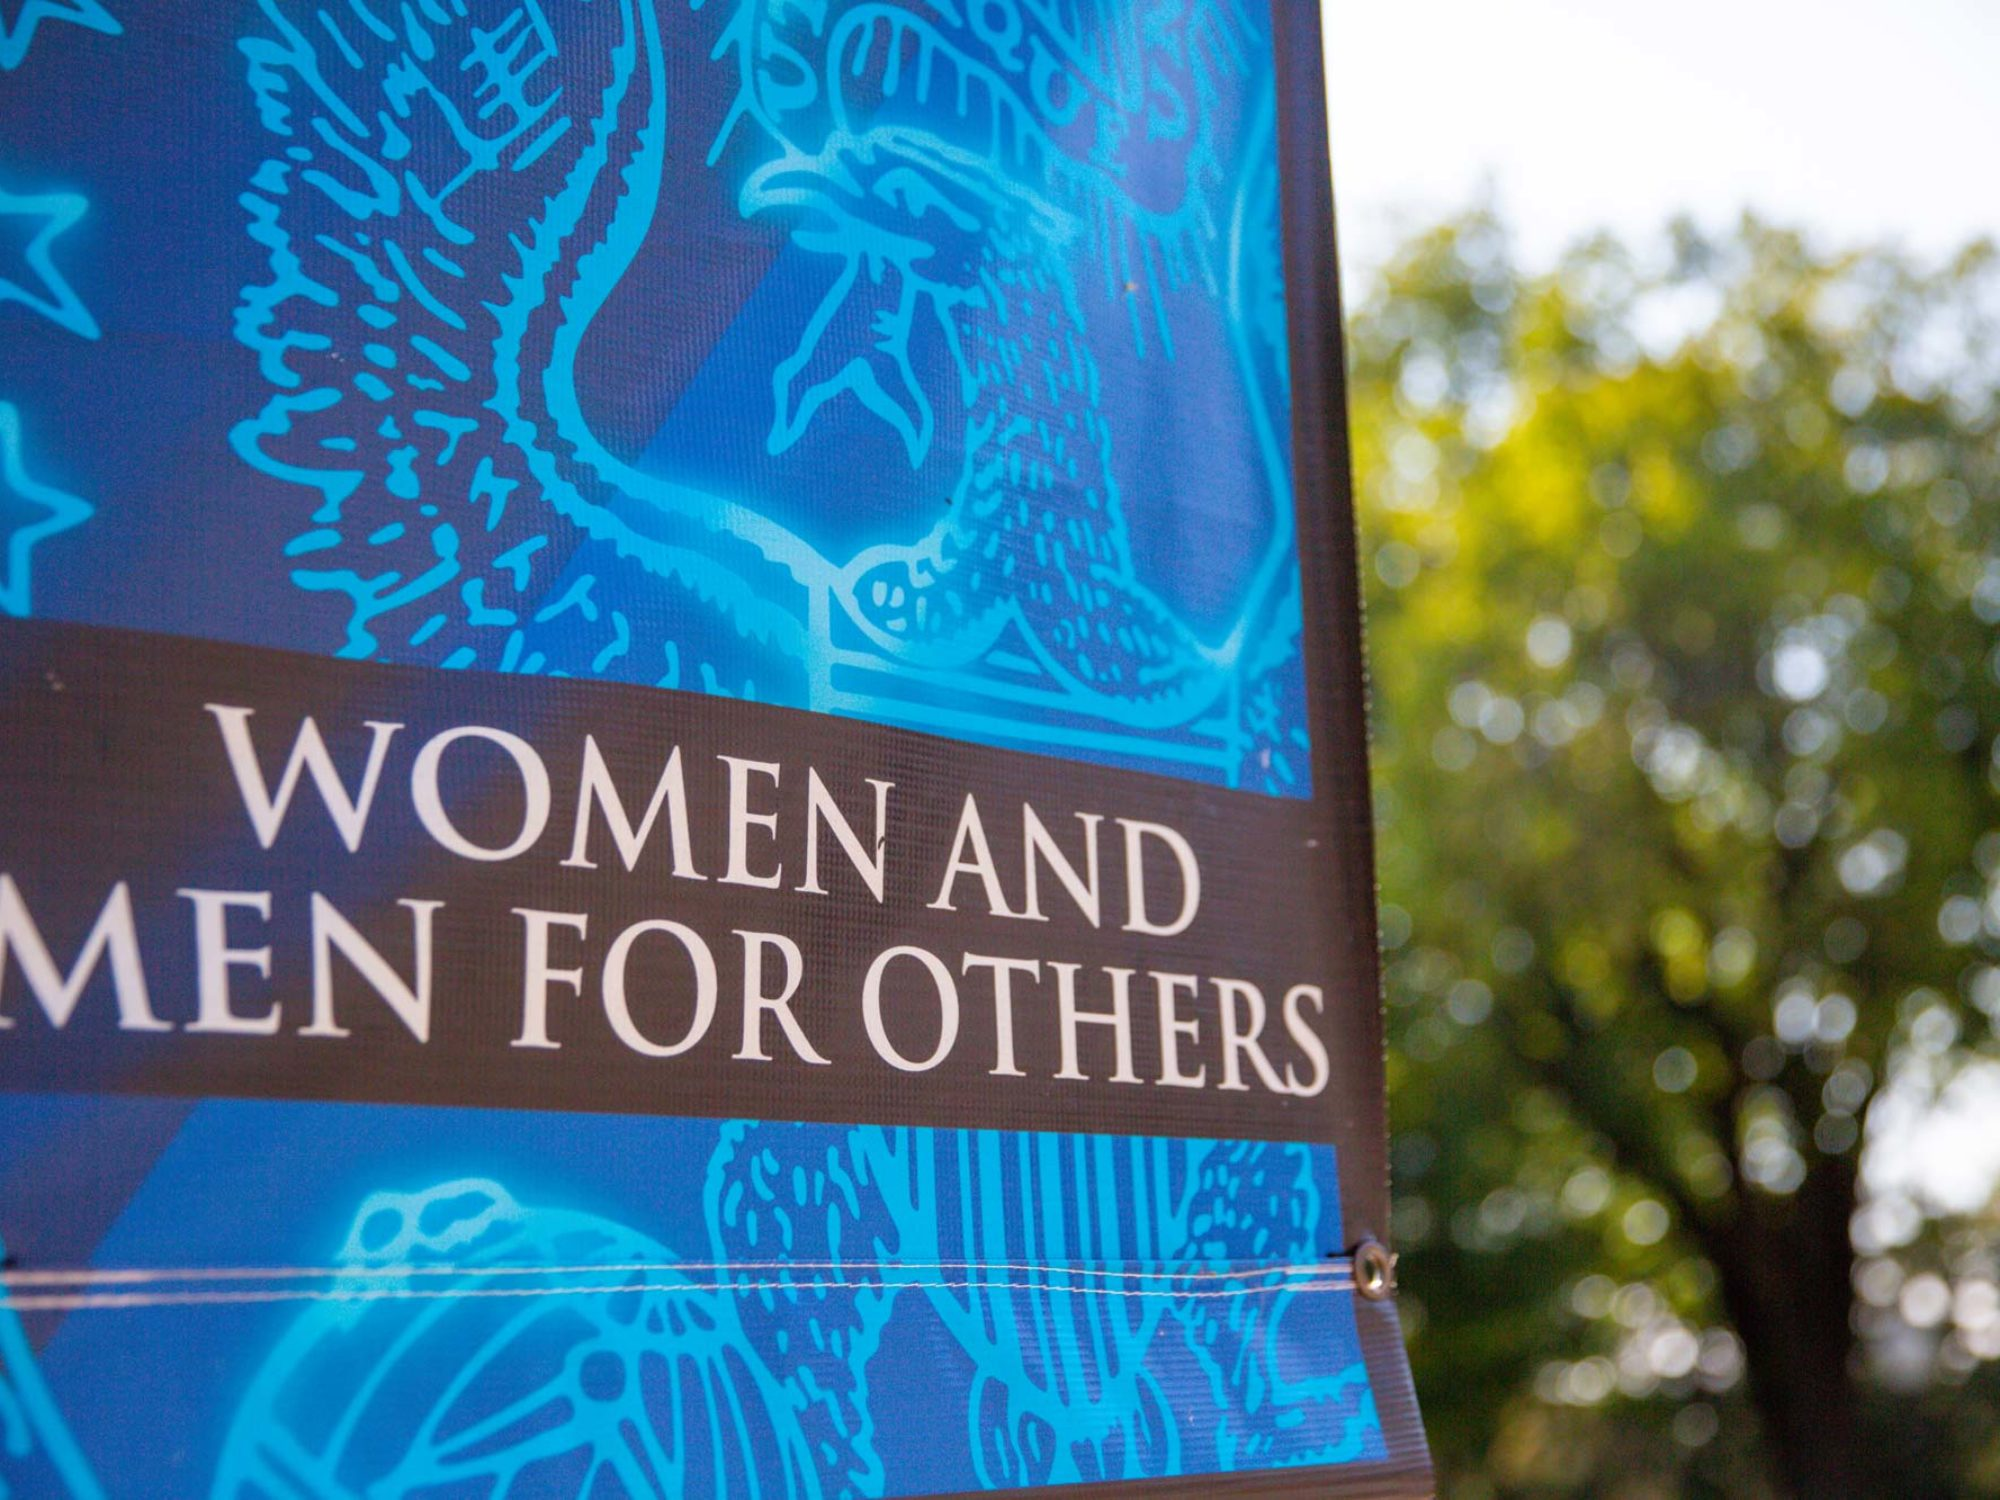 Banner hanging on campus lamppost that reads Women and Men for Others